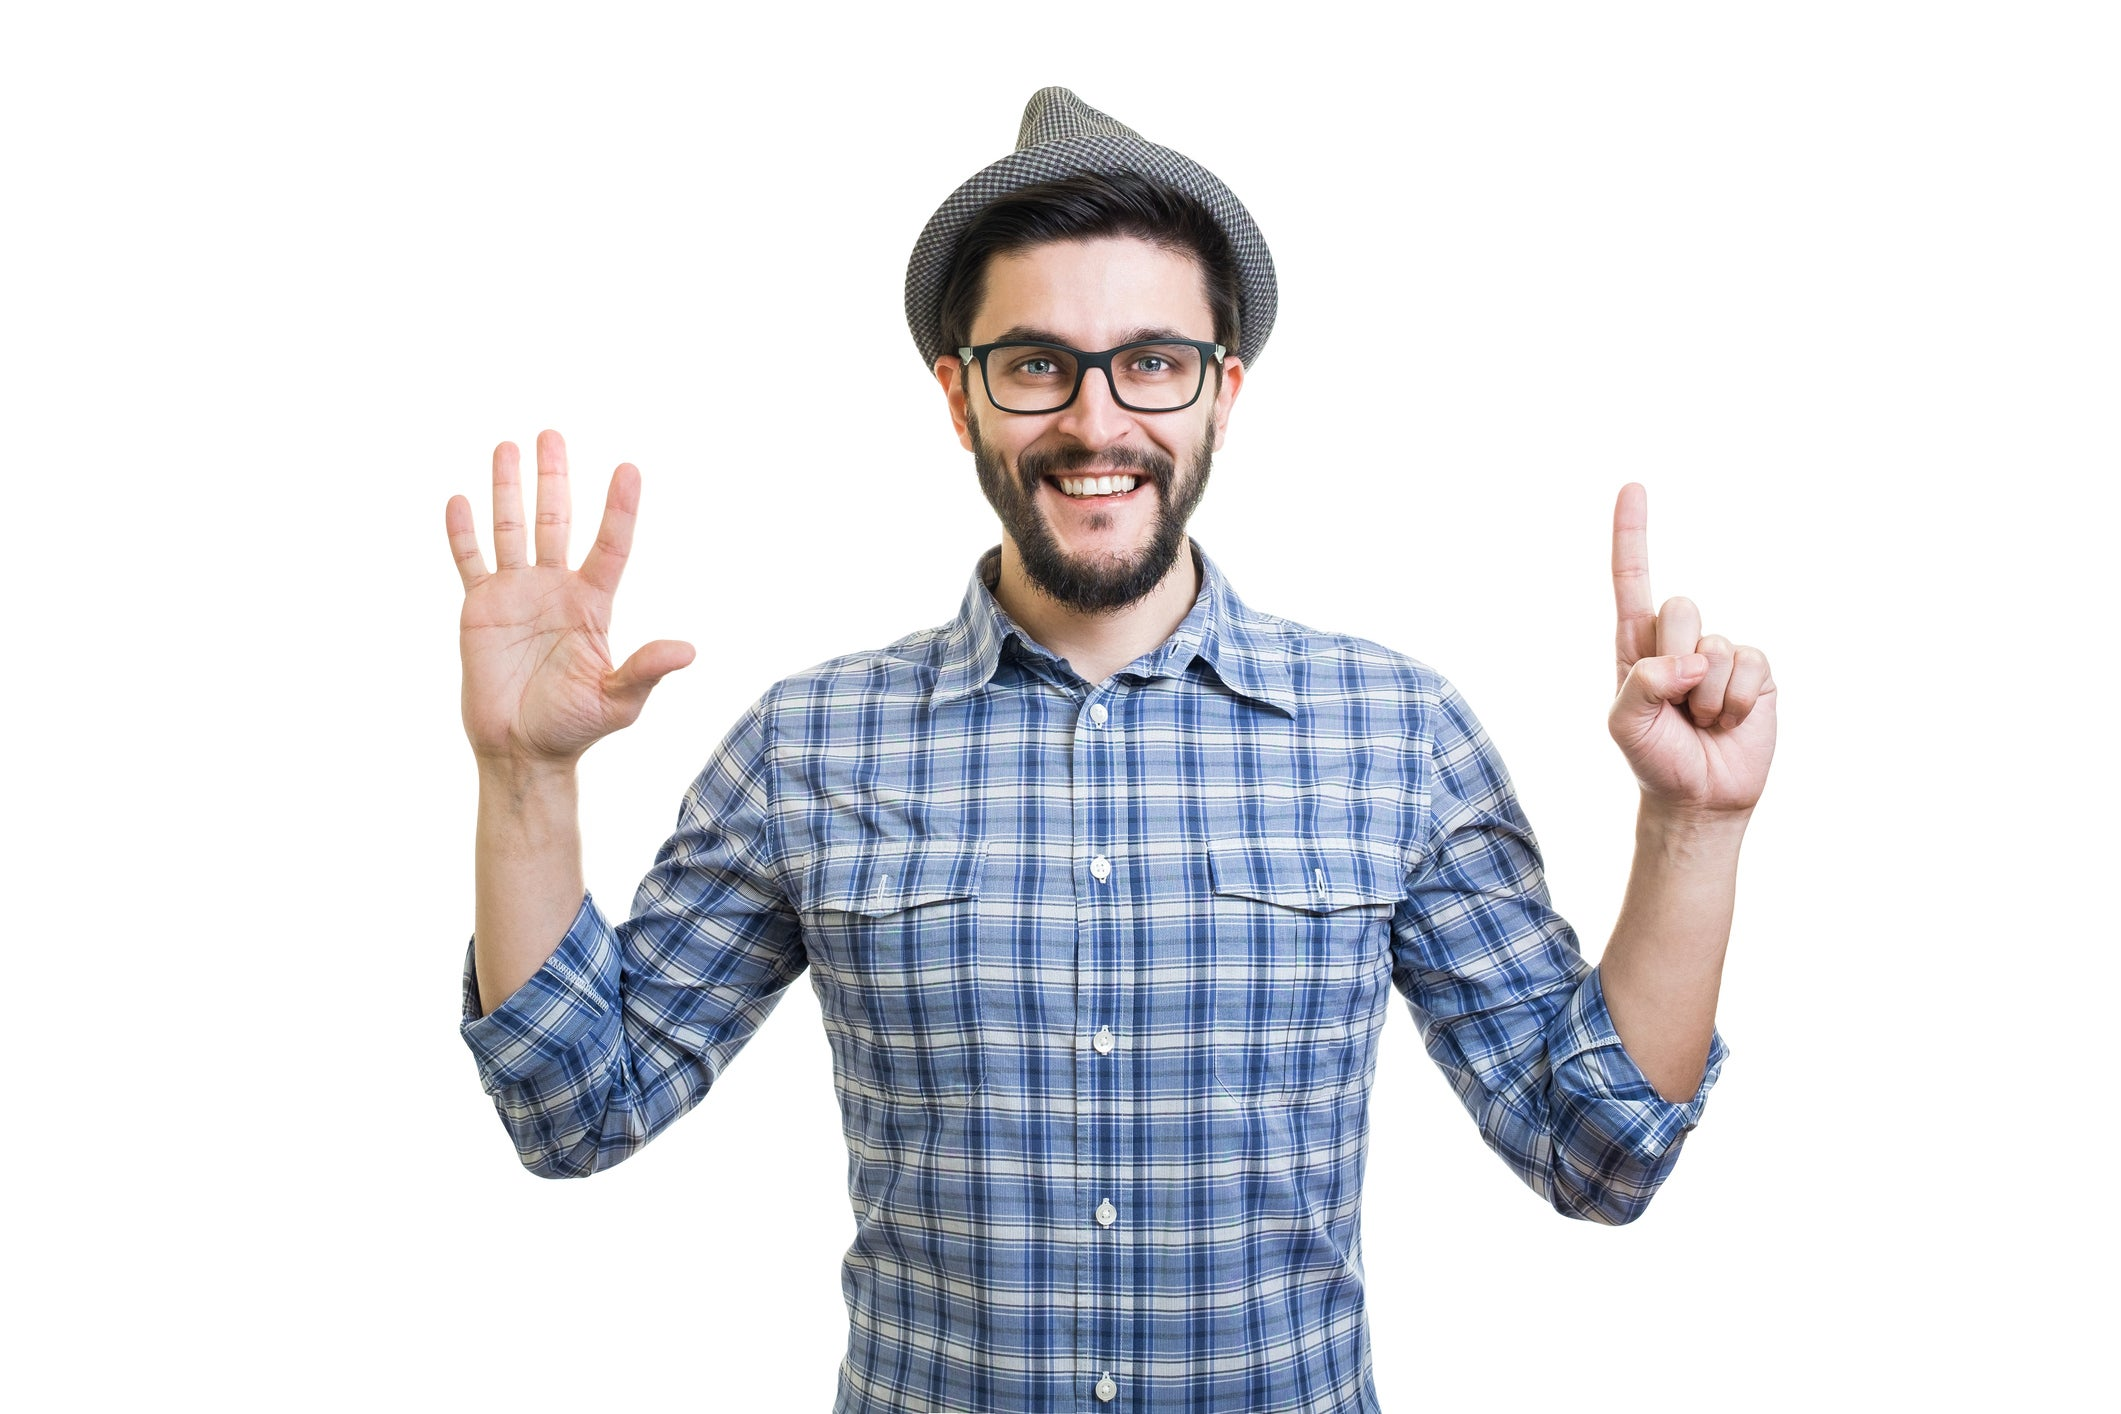 A man holding up six fingers